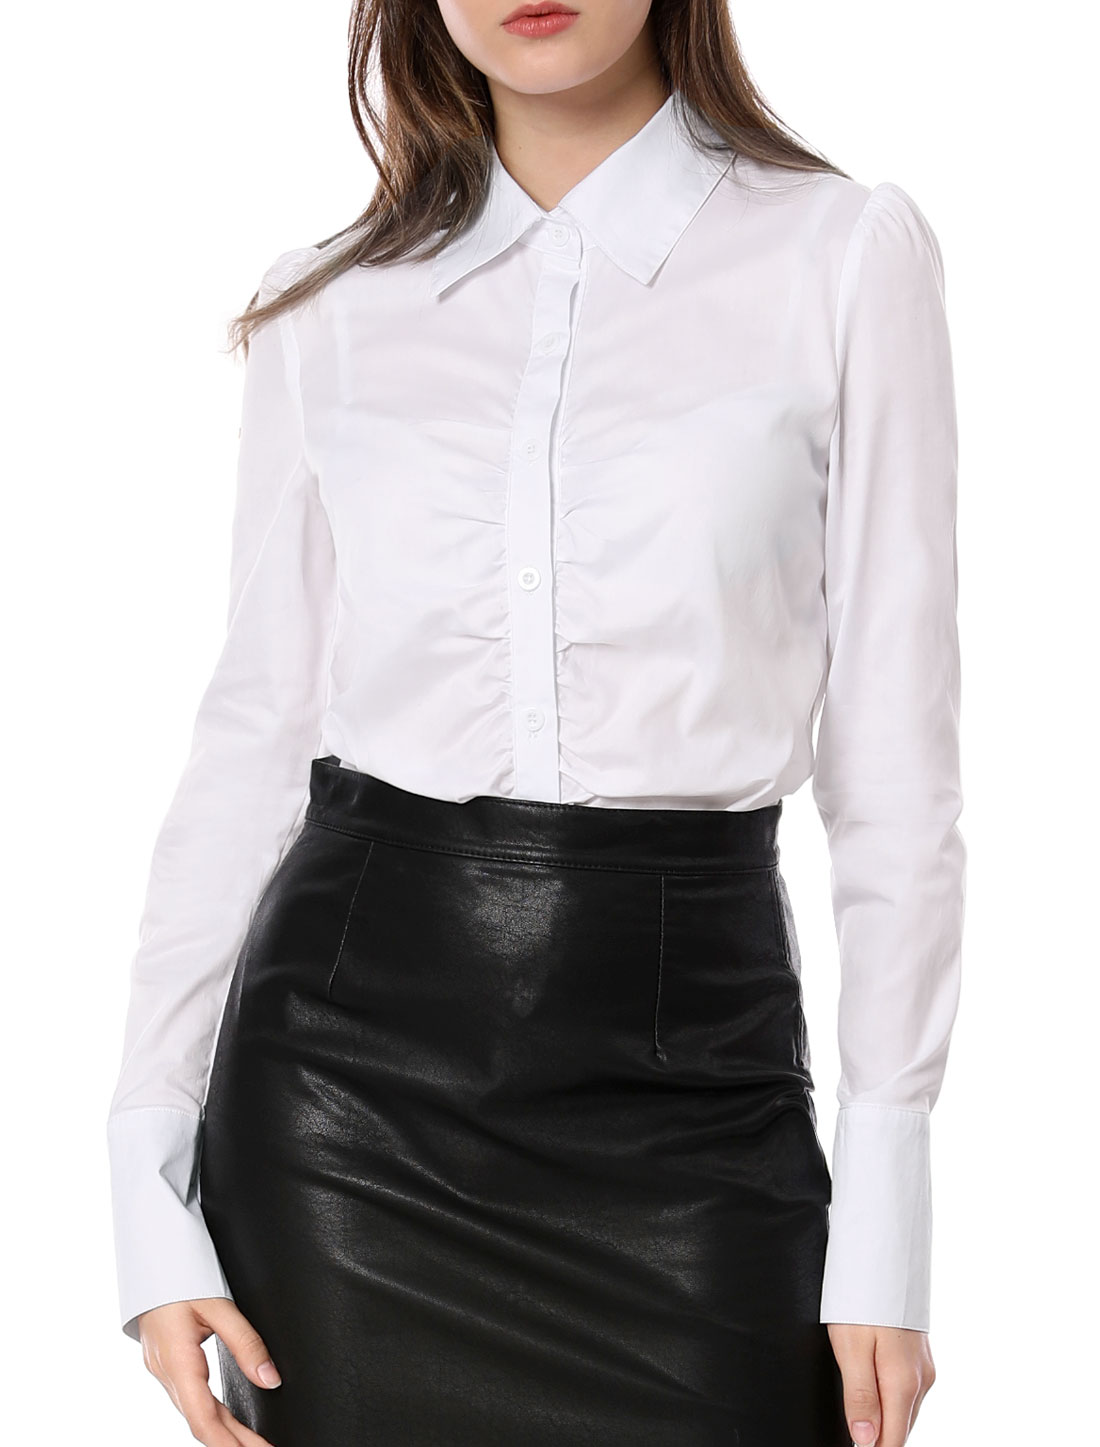 Woman Solid Color Single-Breasted Front White Career Blouse M